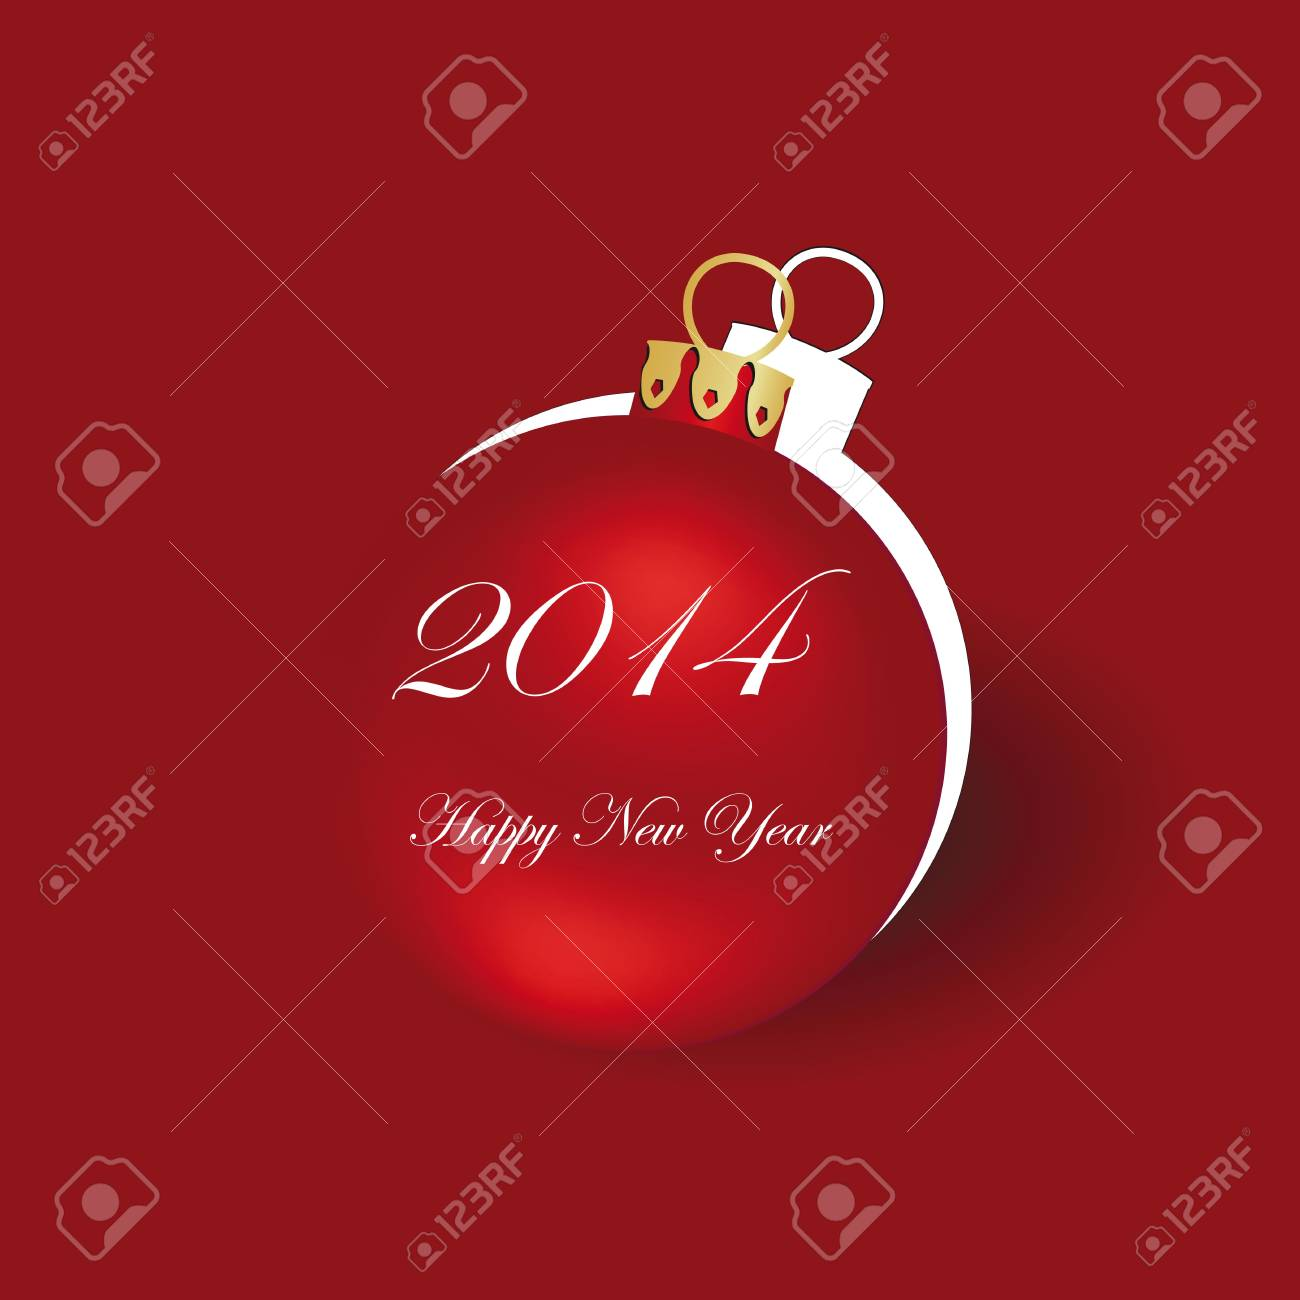 Cute and simple card on New Year 2014 Stock Vector - 21316909